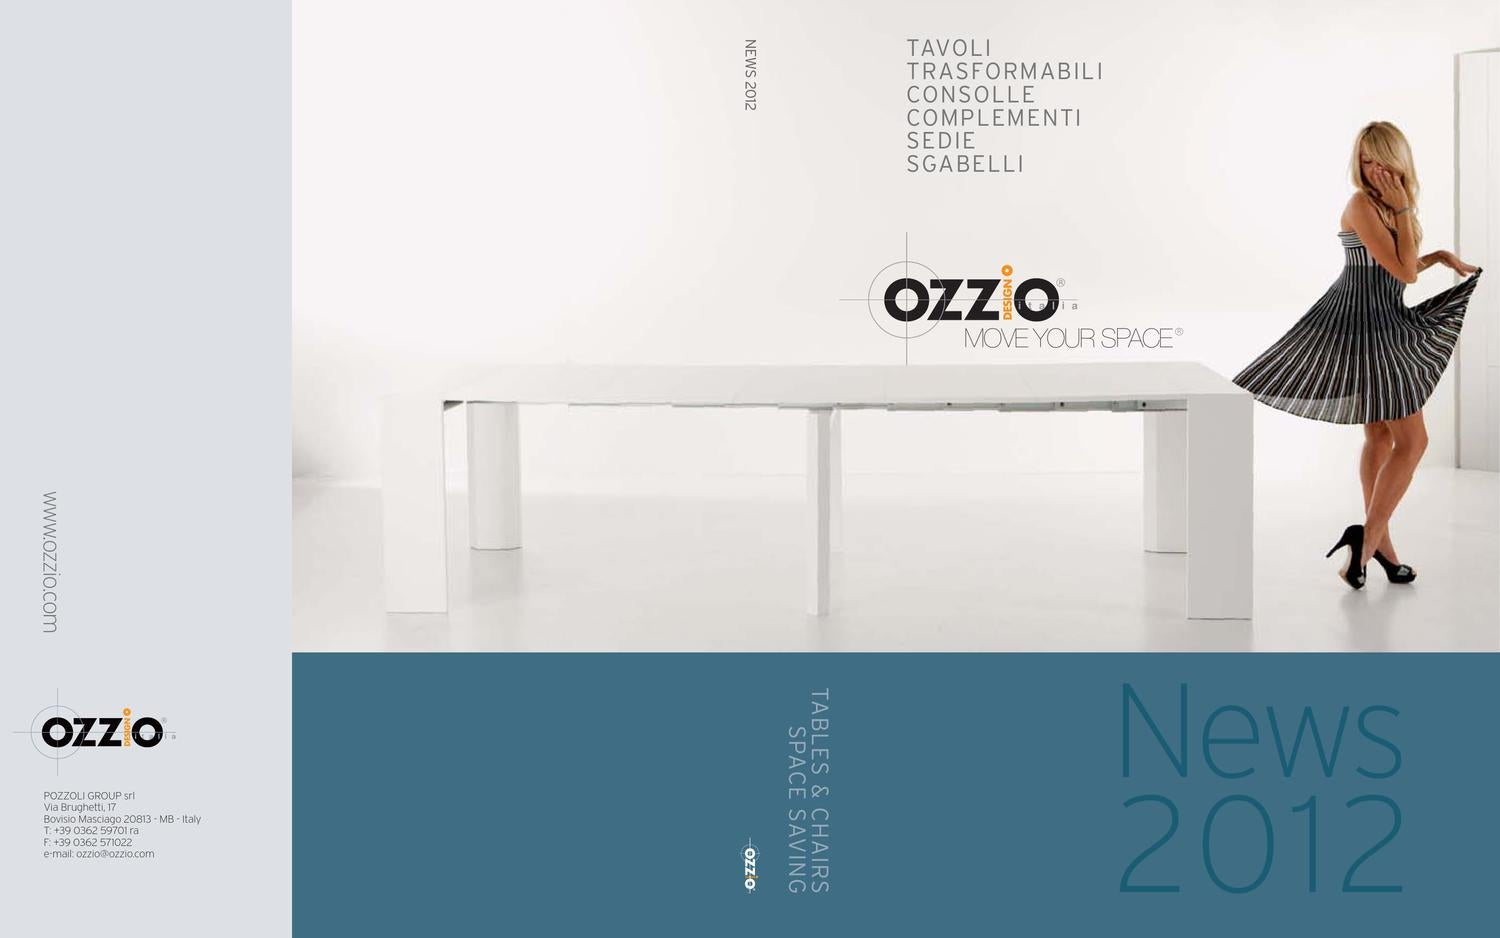 Ozzio news 2012 diffusipro by diffusipro suisse issuu